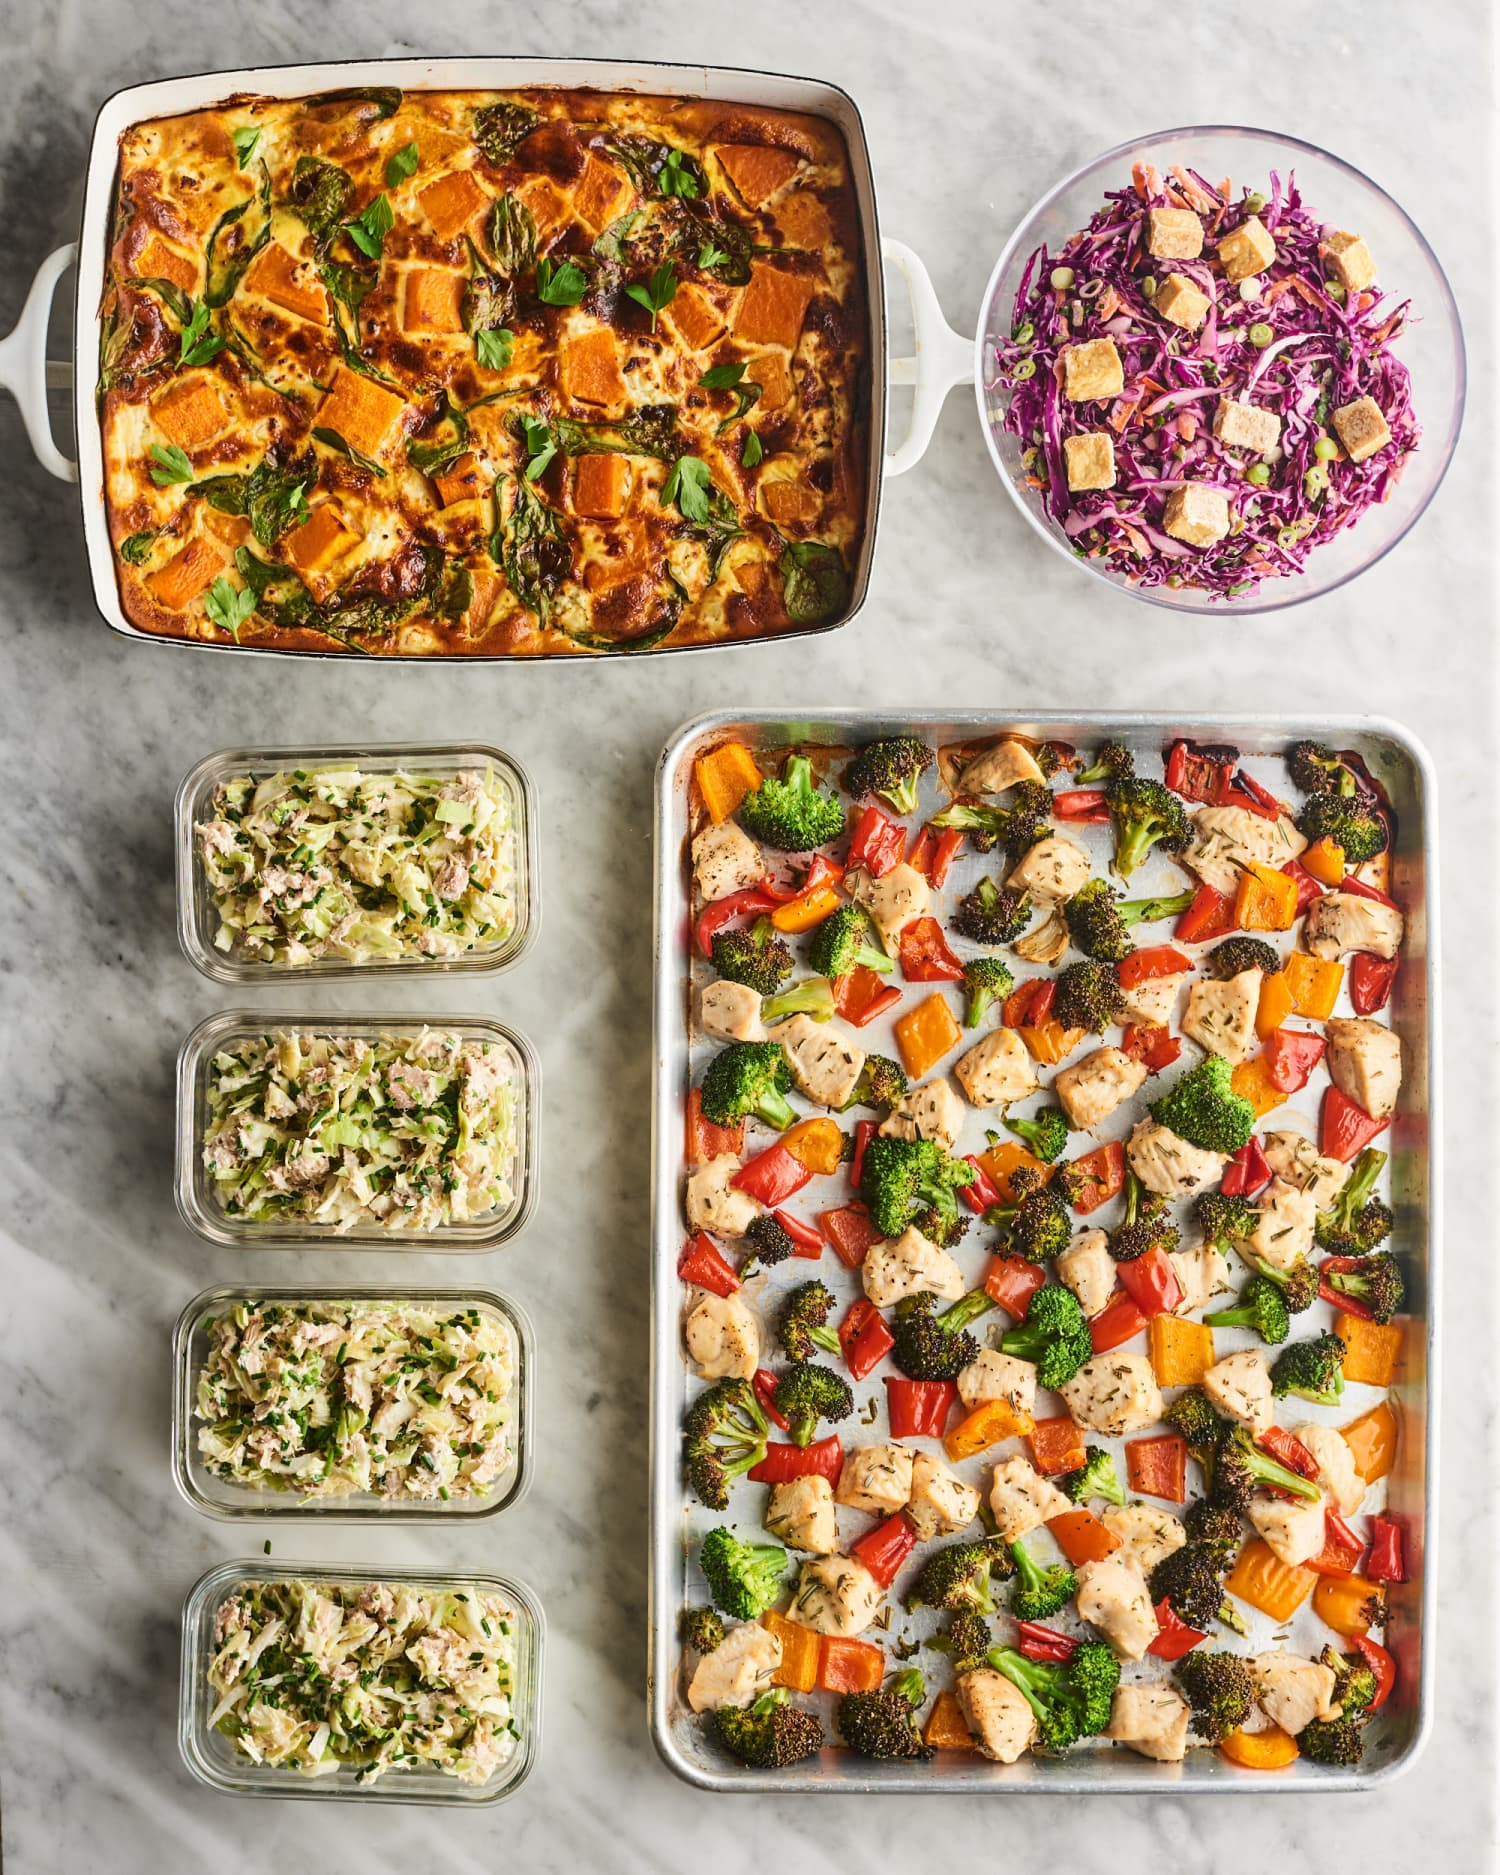 Meal Prep Plan: How I Prep a Week of Low-Carb Meals Packed with Veggies